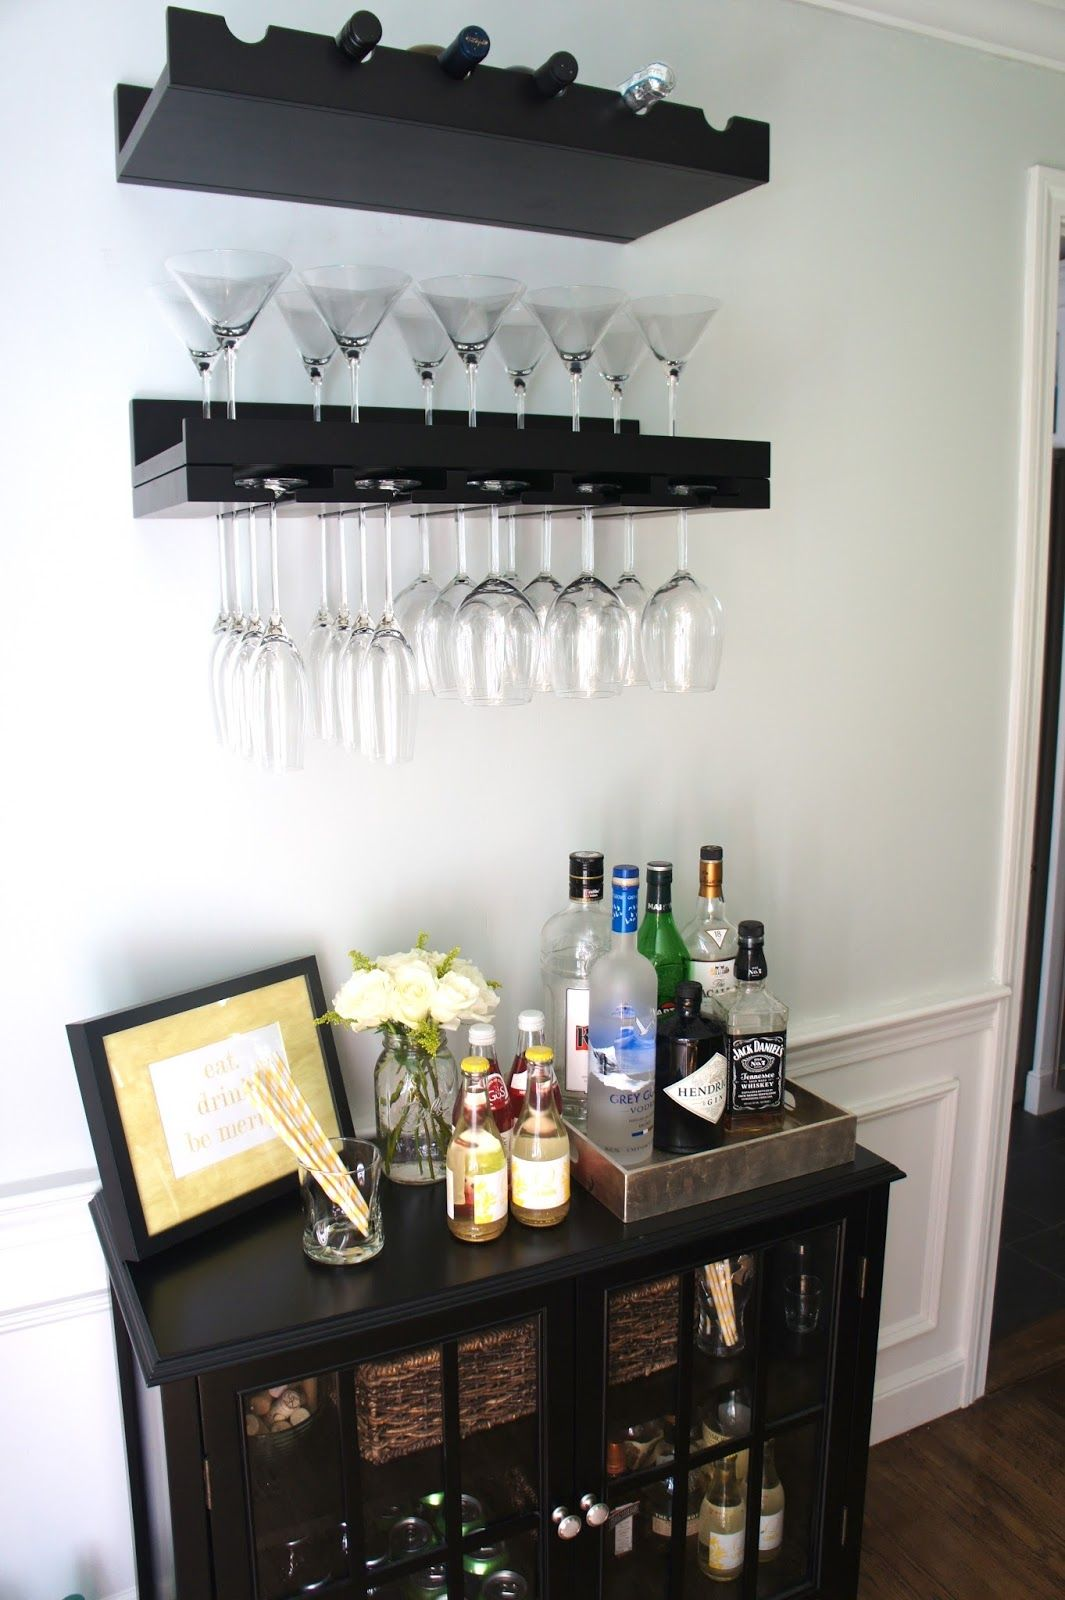 Nice Home With Baxter: An Organized Home Bar Area   Home Decor